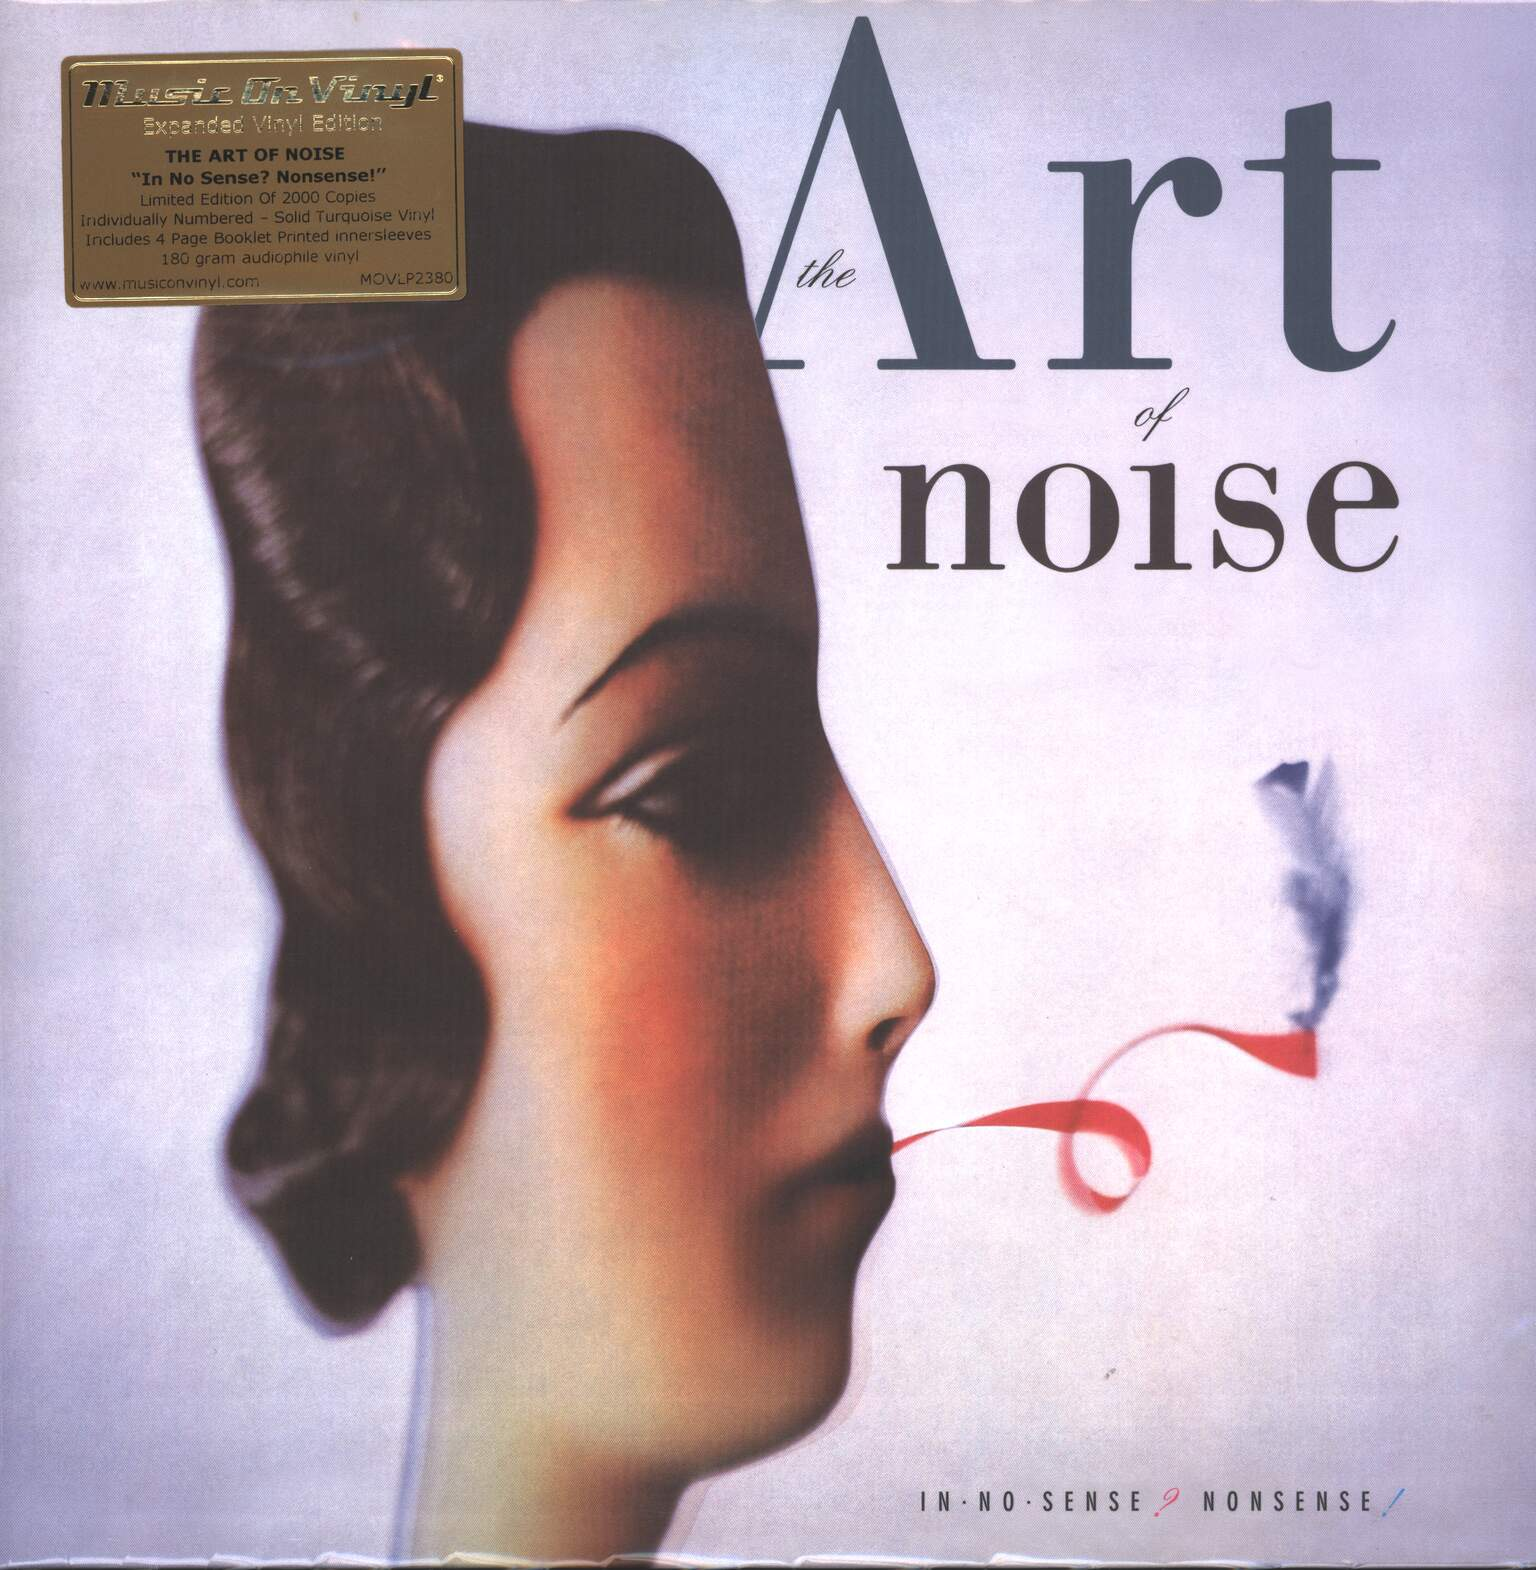 The Art Of Noise: In No Sense? Nonsense!, 1×LP (Vinyl), 1×LP (Vinyl)